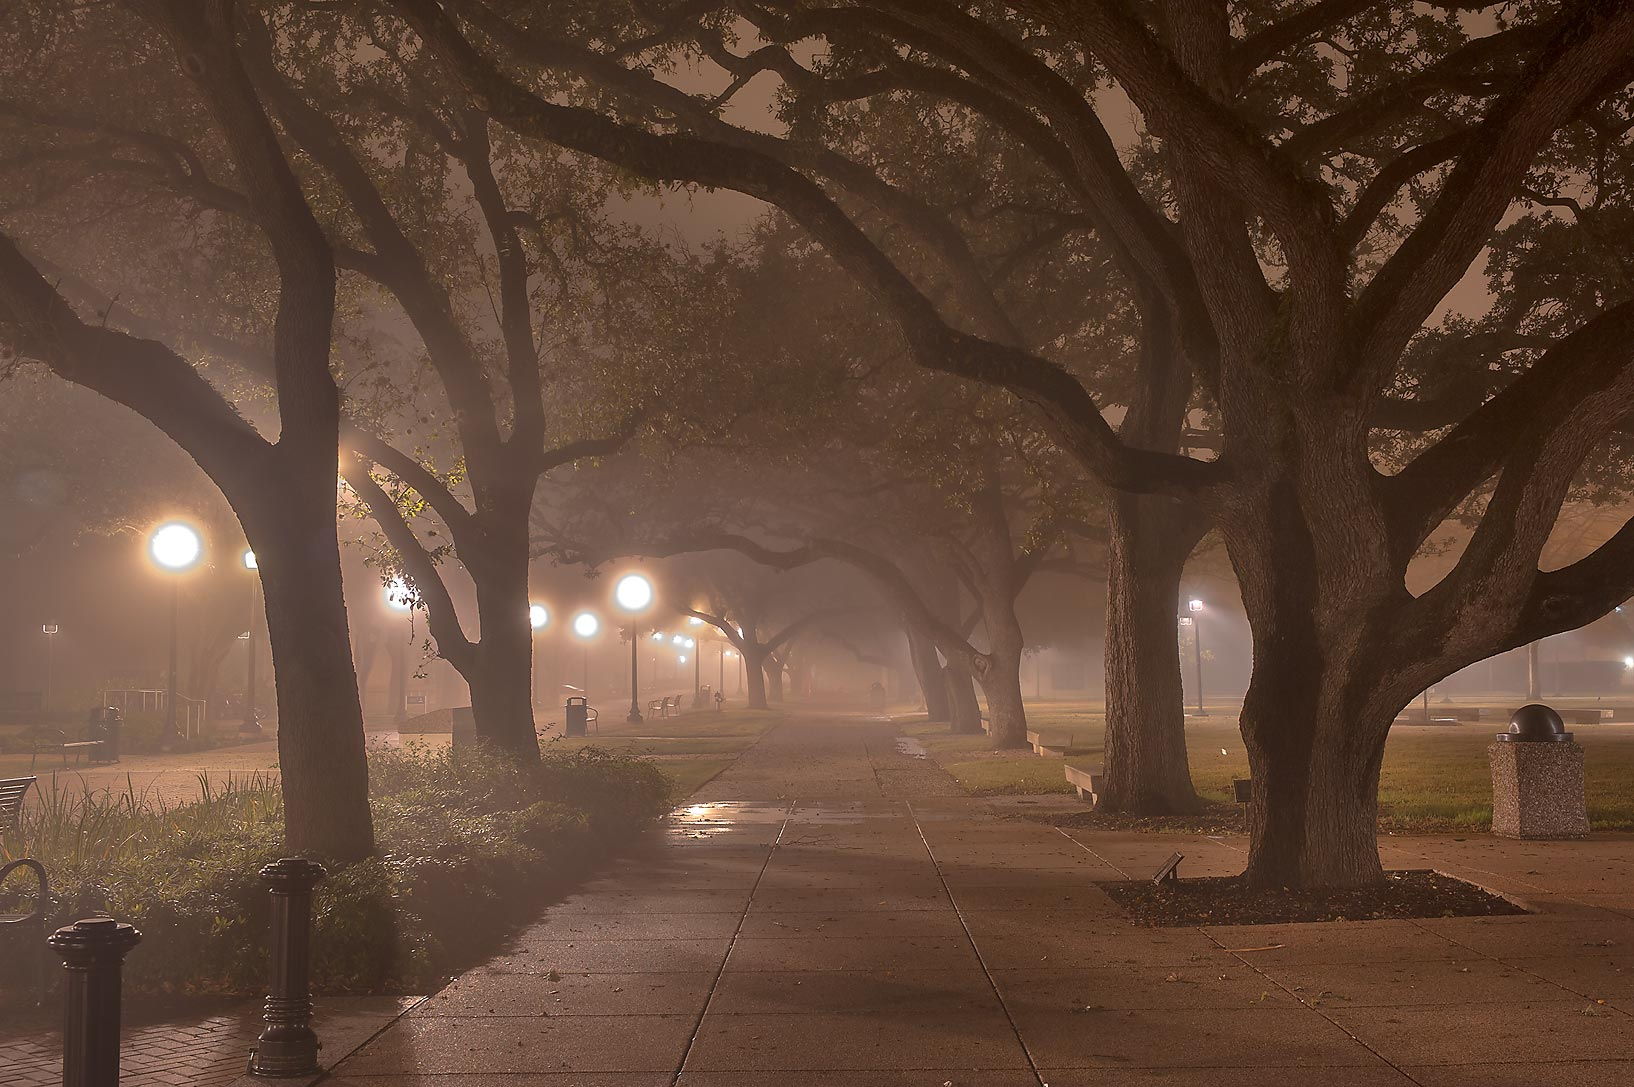 Oak alley of Military Walk on campus of Texas A&M University. College Station, Texas